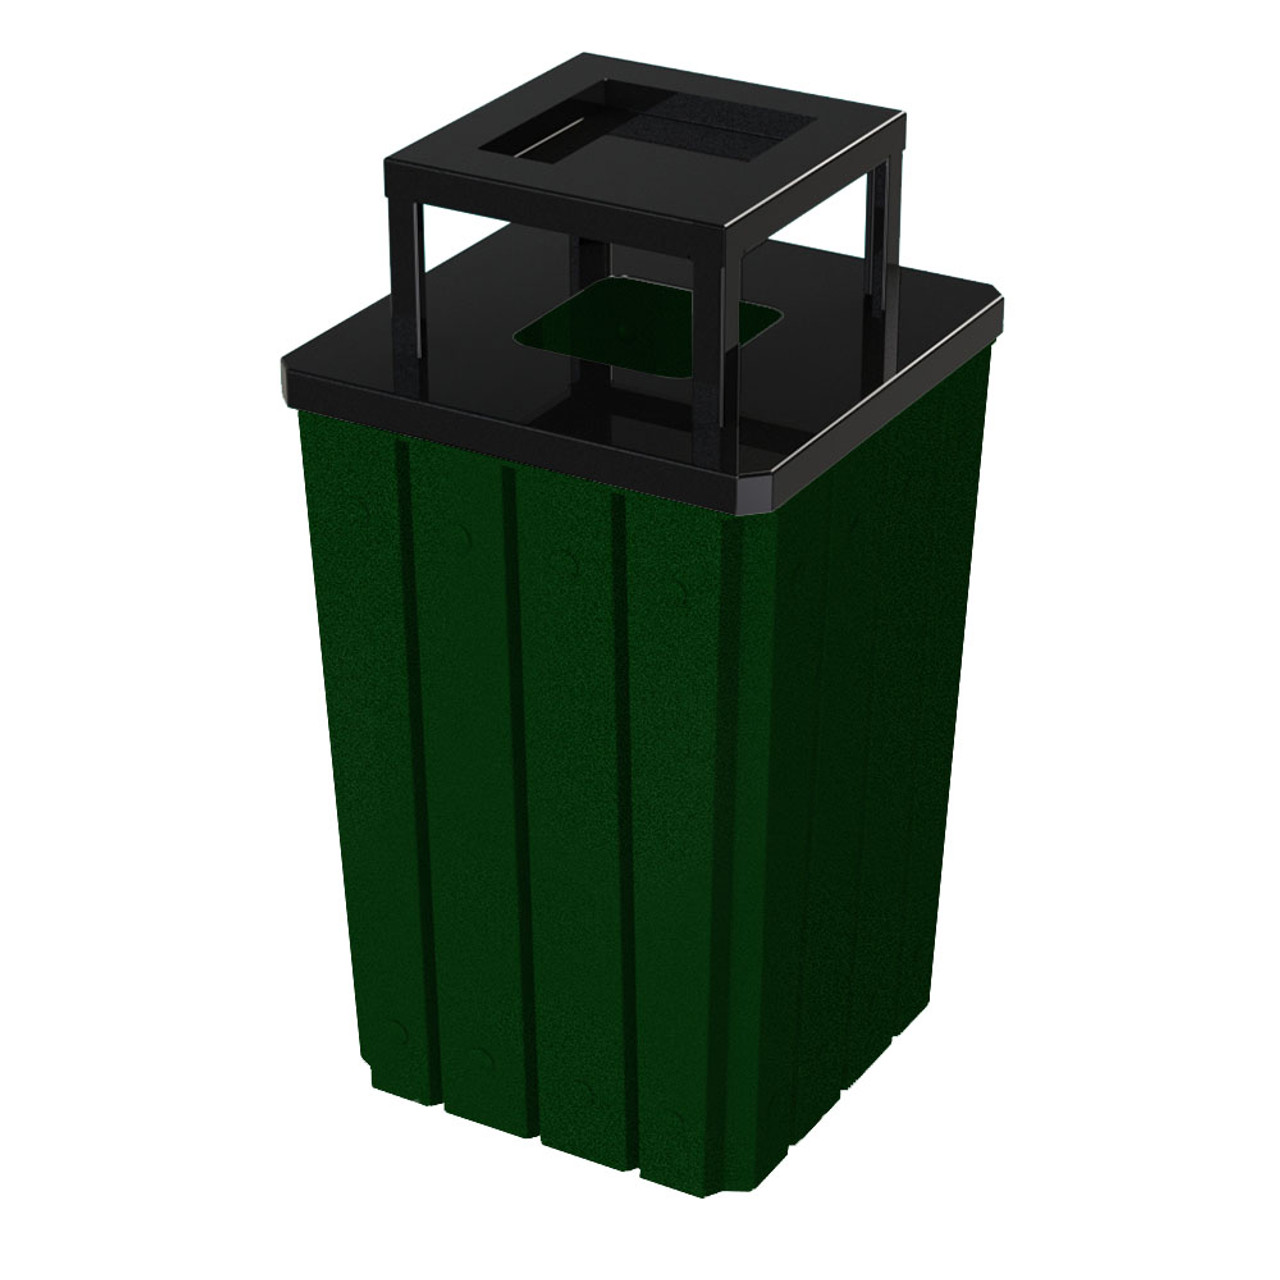 32 Gallon Heavy Duty Green Ash Trash Can with Liner S8295S-00-075